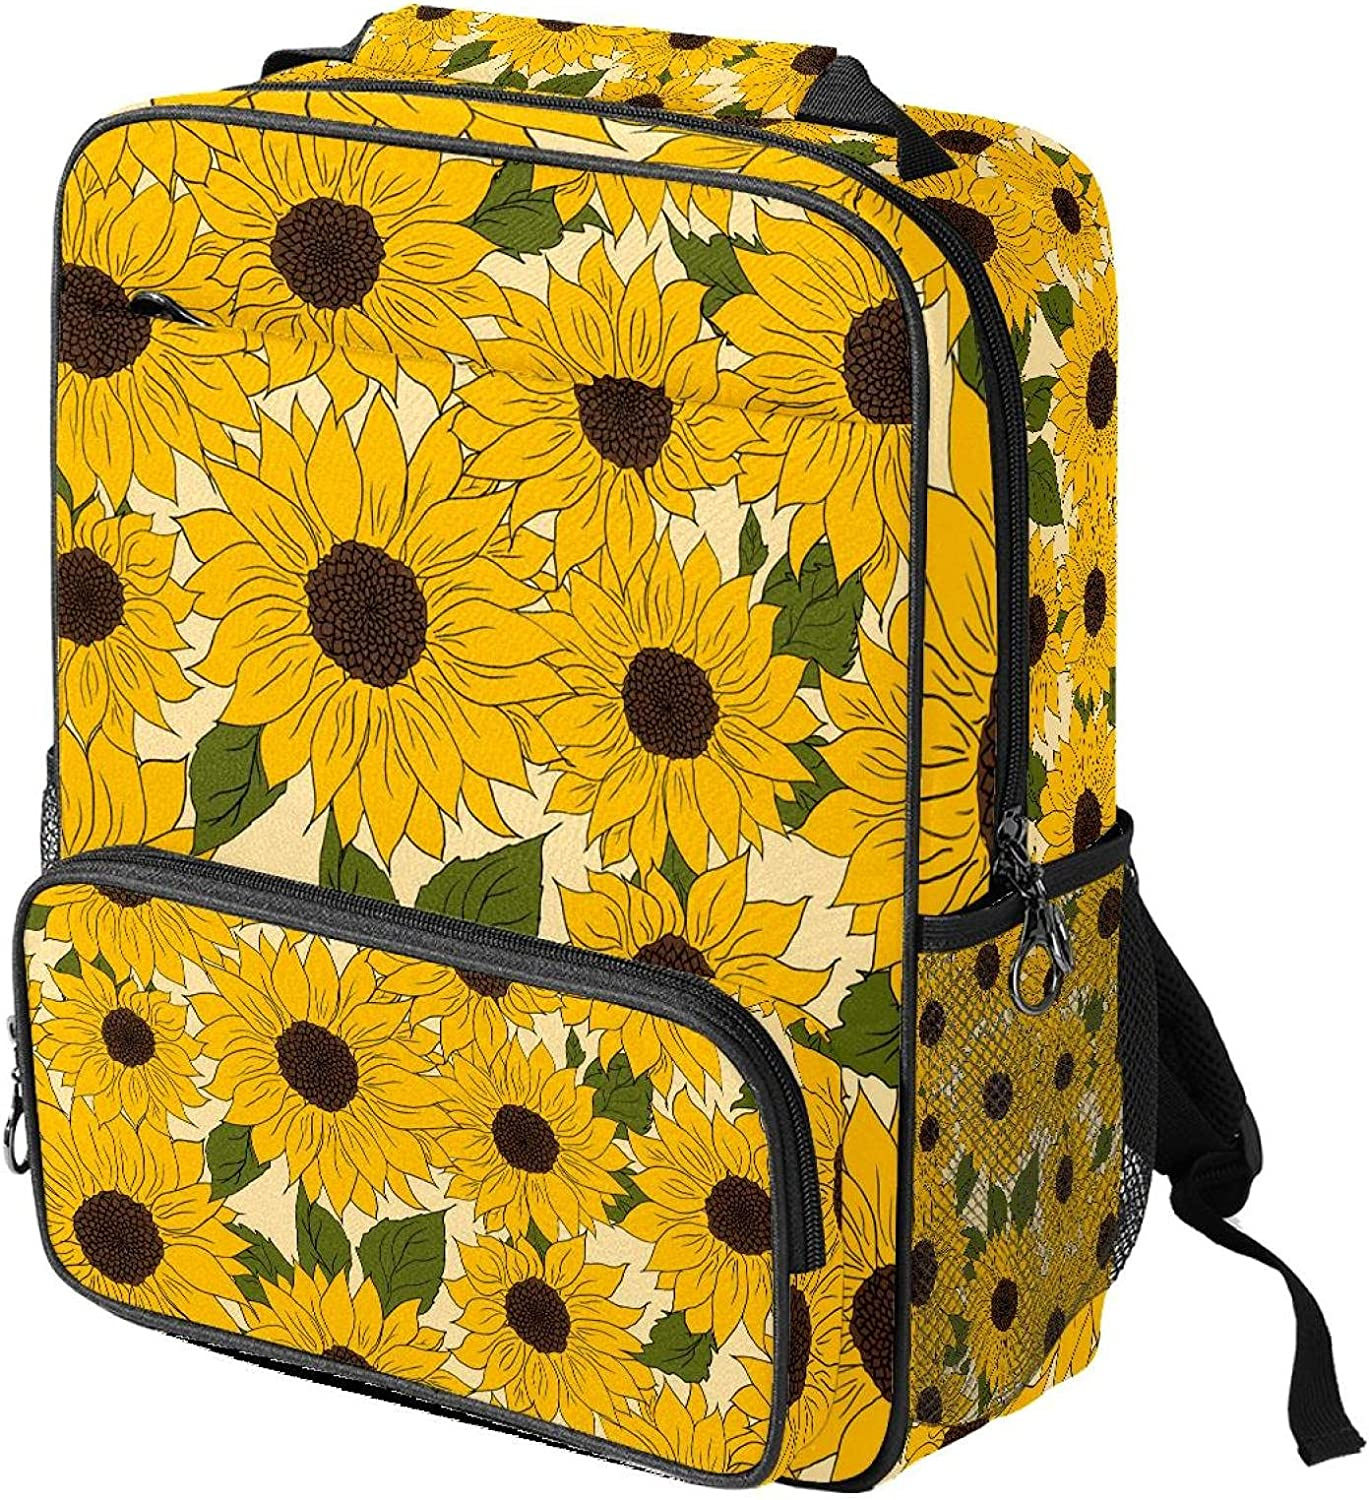 40% OFF Cheap Sale Backpack low-pricing for Girls Sunflower School Waterproof B